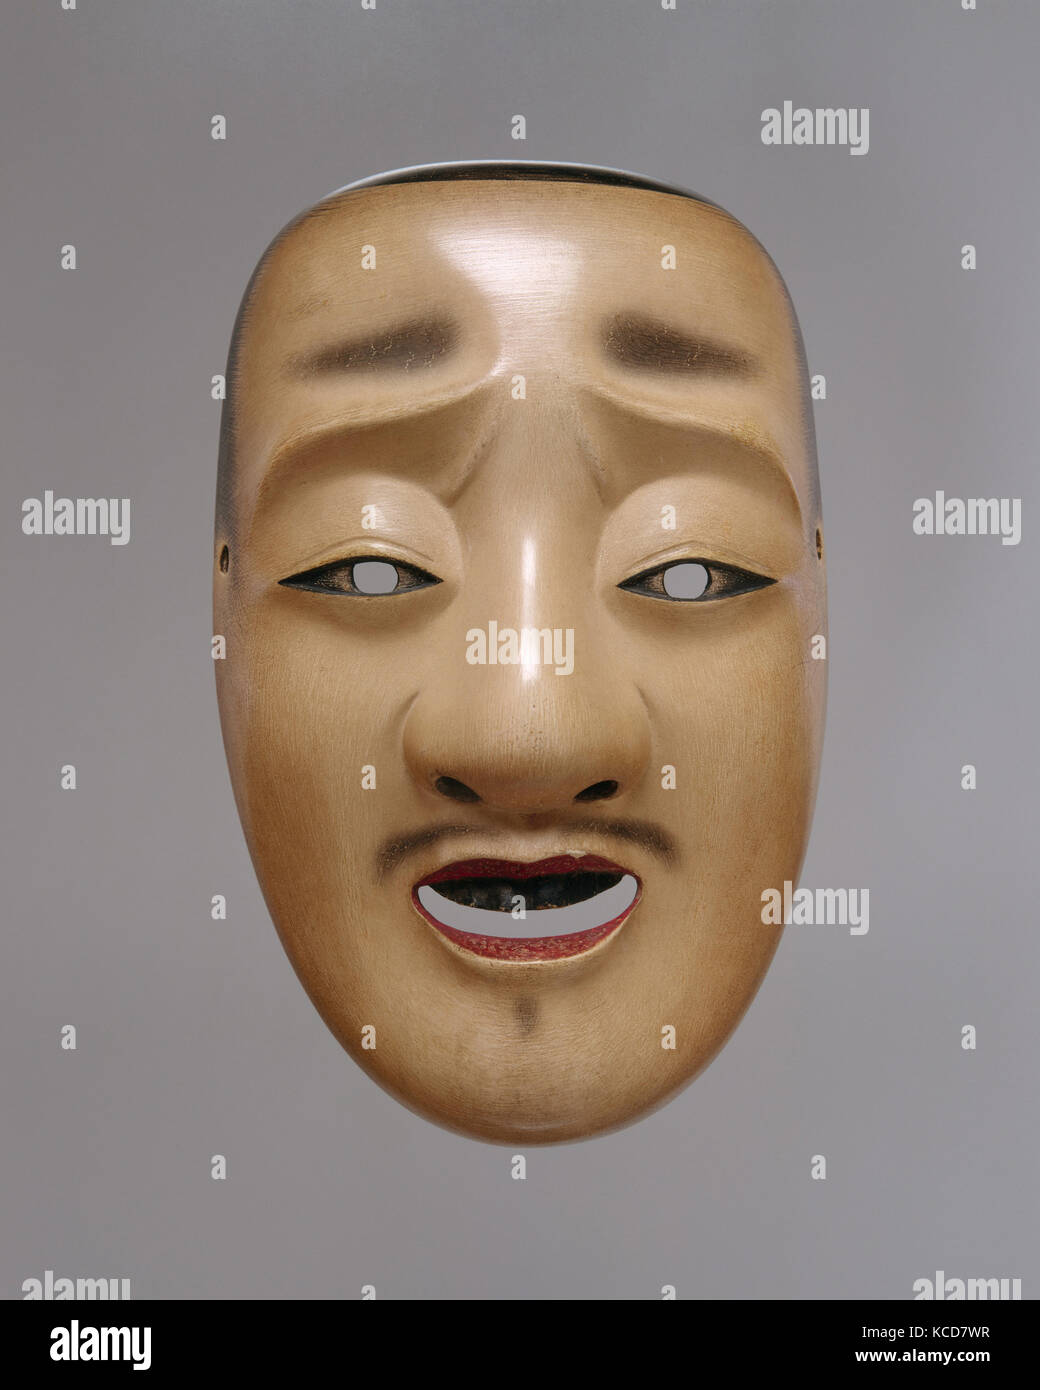 noh drama masks Buy products related to noh mask products and see what customers say about noh mask products on amazoncom free delivery possible on eligible purchases.